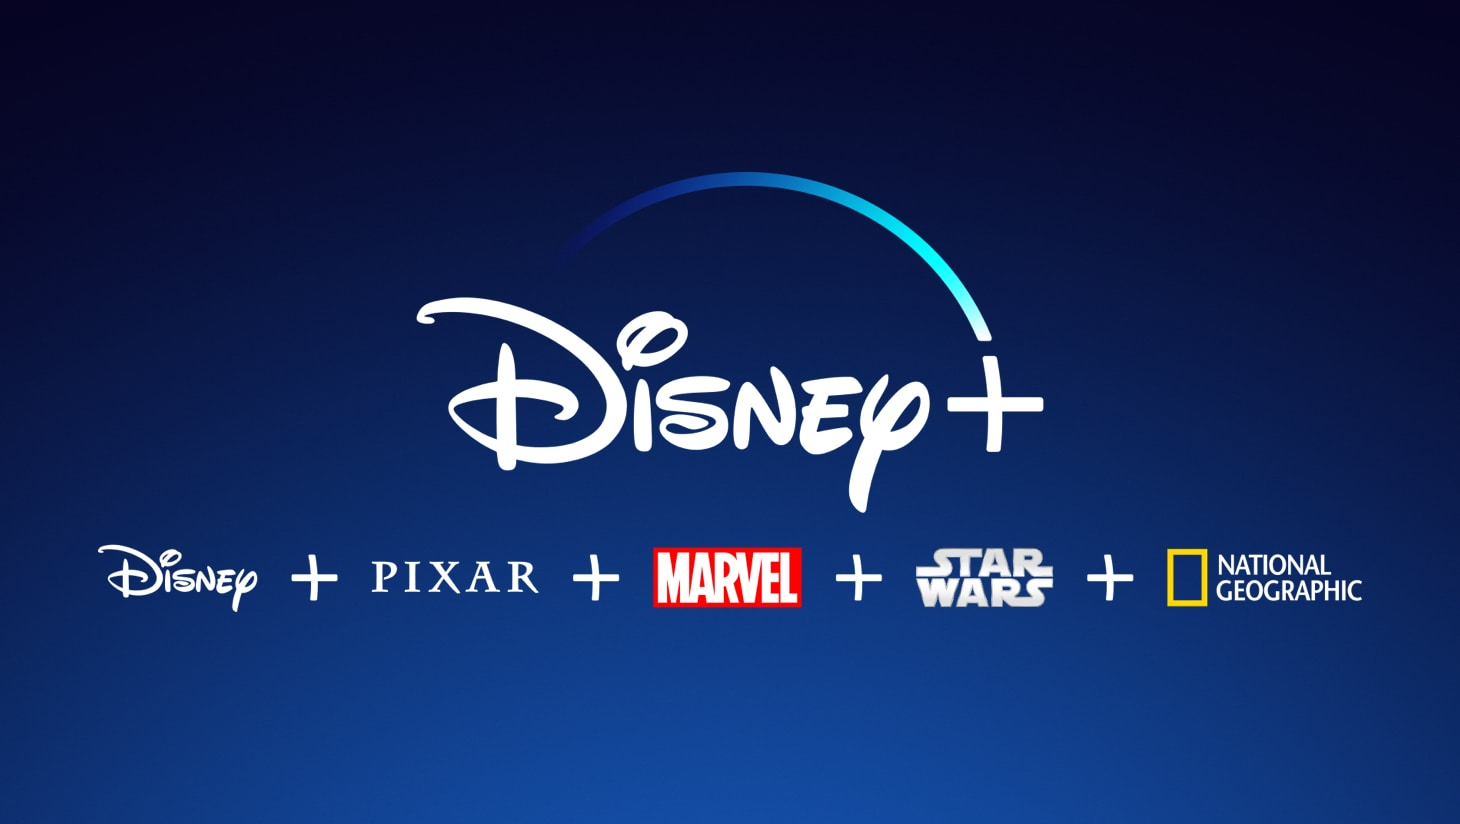 Your questions about Disney+ answered.